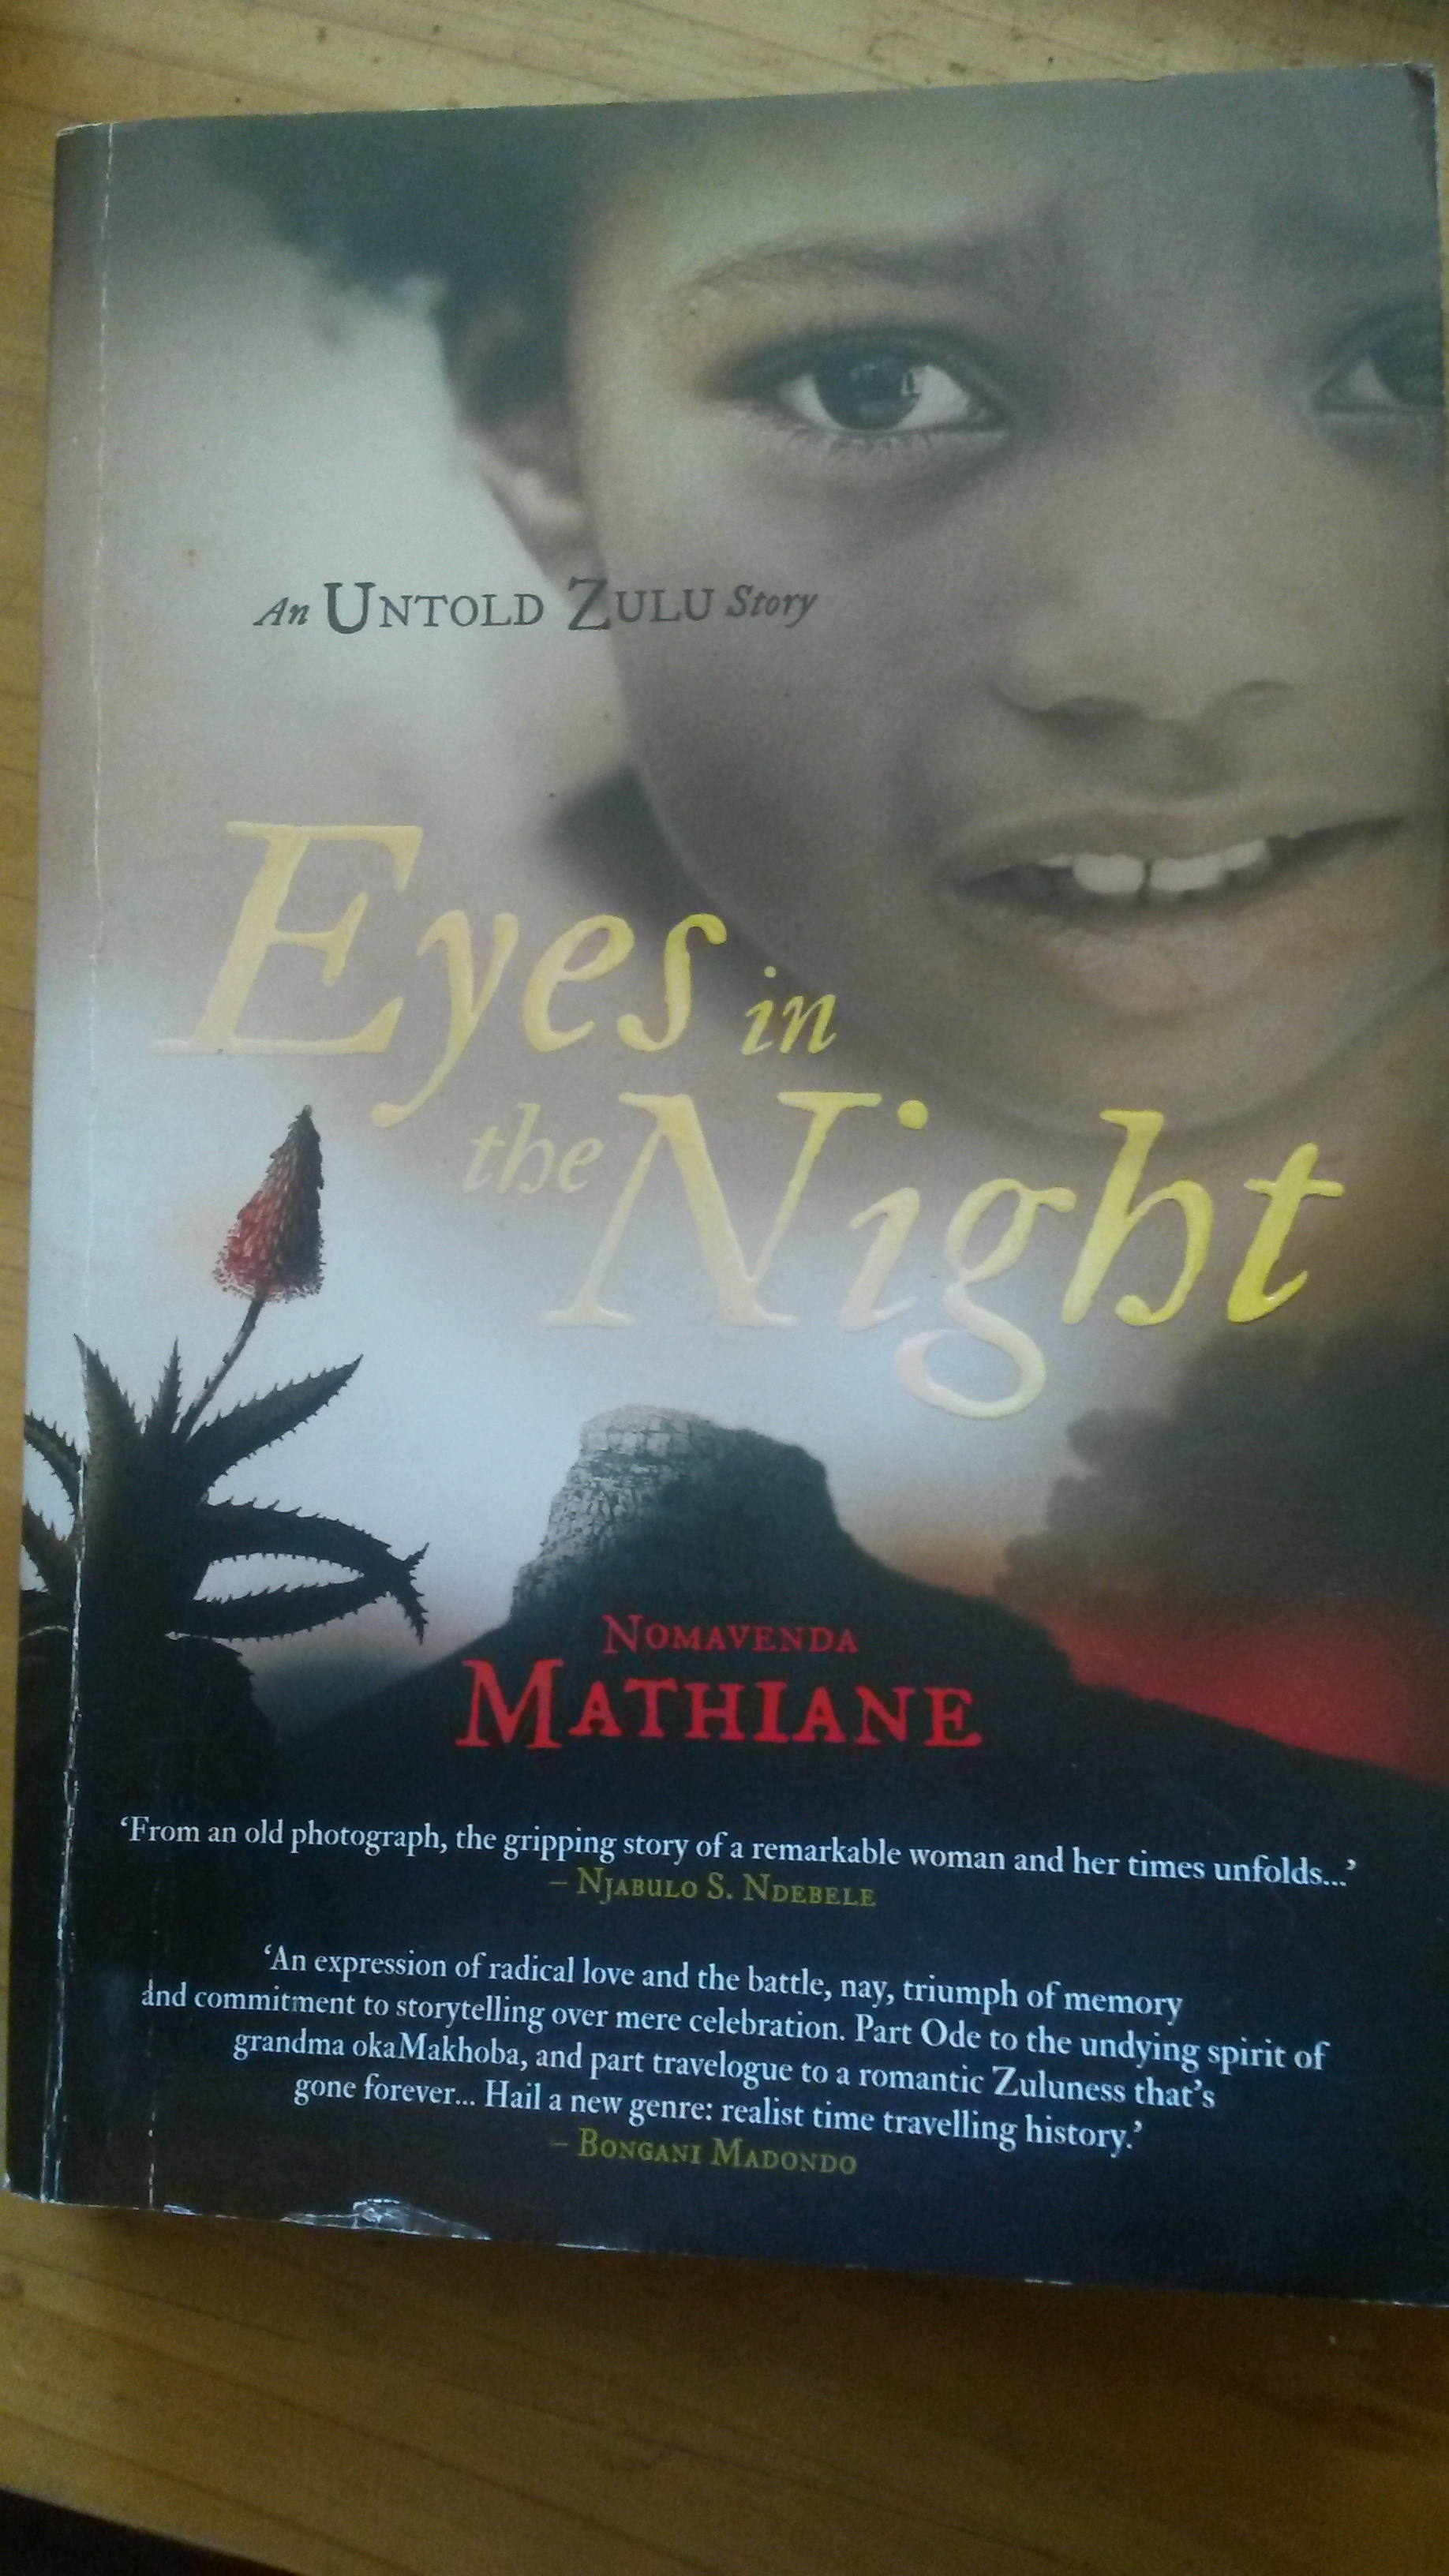 Eyes in the Night by Nomavenda Mathiane